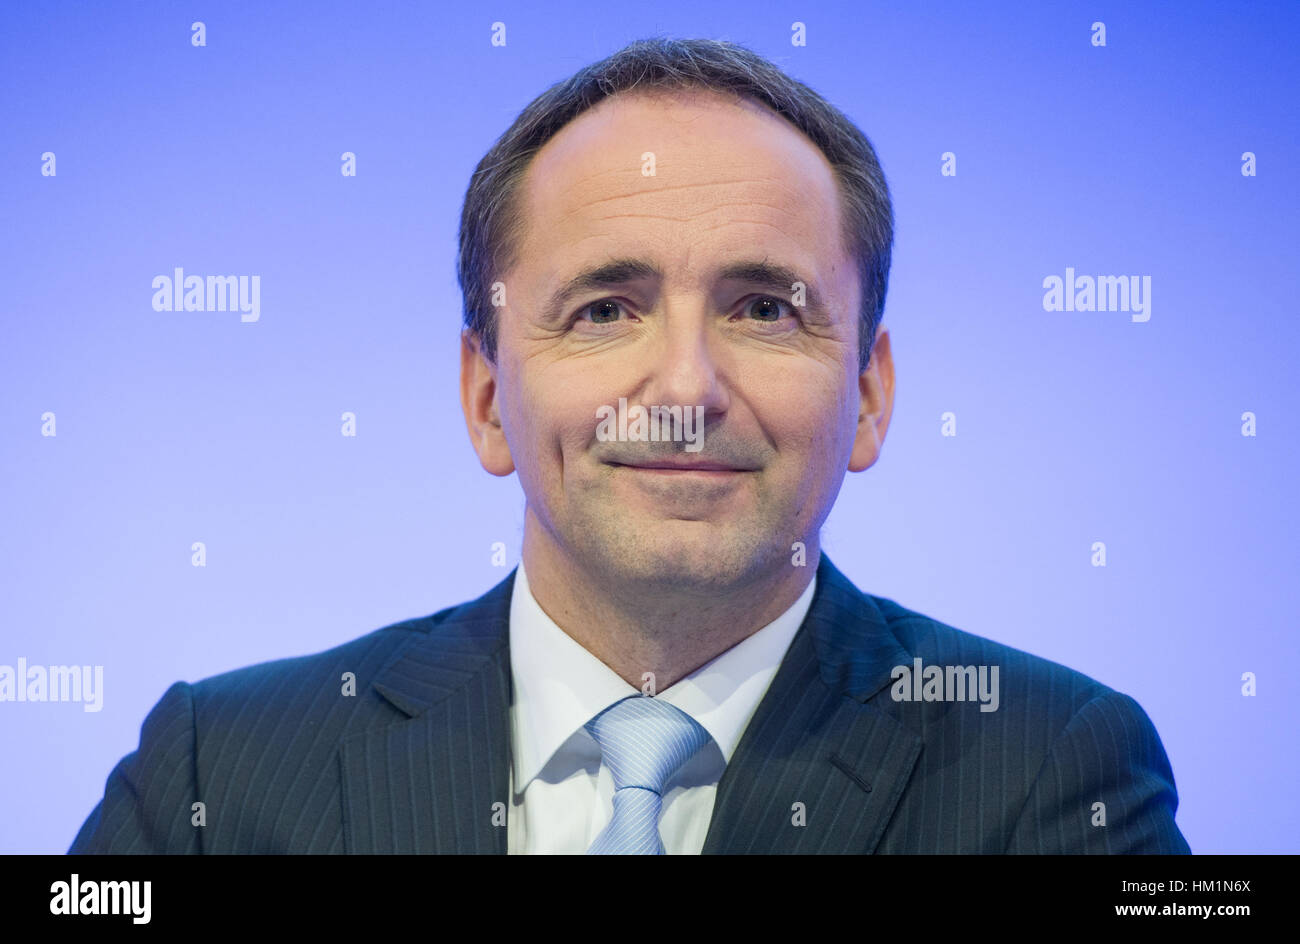 21st Jan 2014 Archive The Former Head Of The Board Of The Sap Jim Hagemann Snabe Sits During A Press Conference In Walldorf Germany